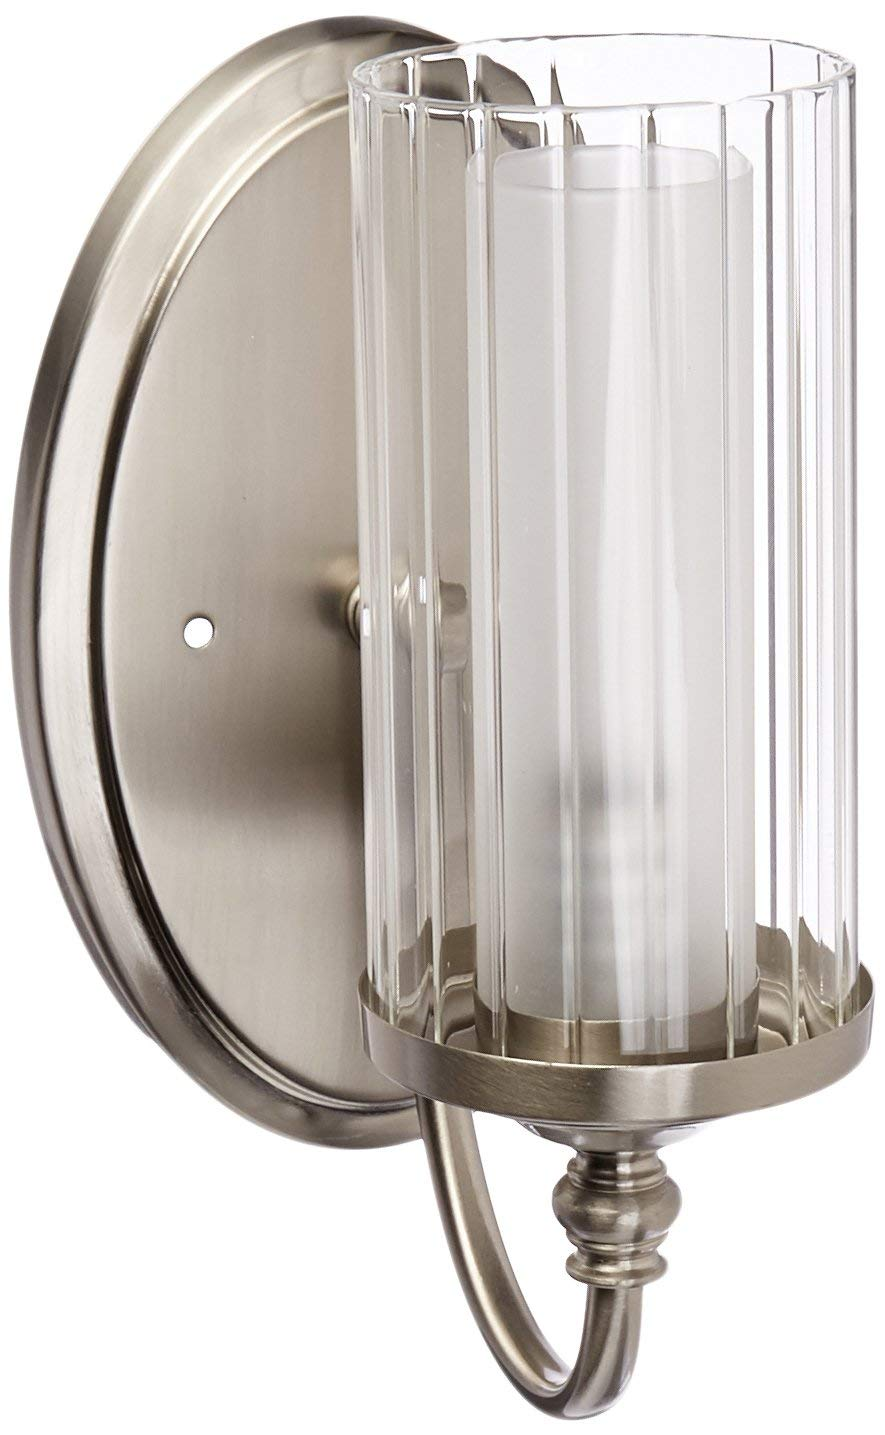 Hardware House LLC 20-9304 # Lexington Series 1-Light Wall Fixture Satin Nickel Wall and Bath One-Light Fixture Comes with Clear Ribbed and Frosted Glass Uses (1) 60 Watt (E12) Candelabra Base Bulb